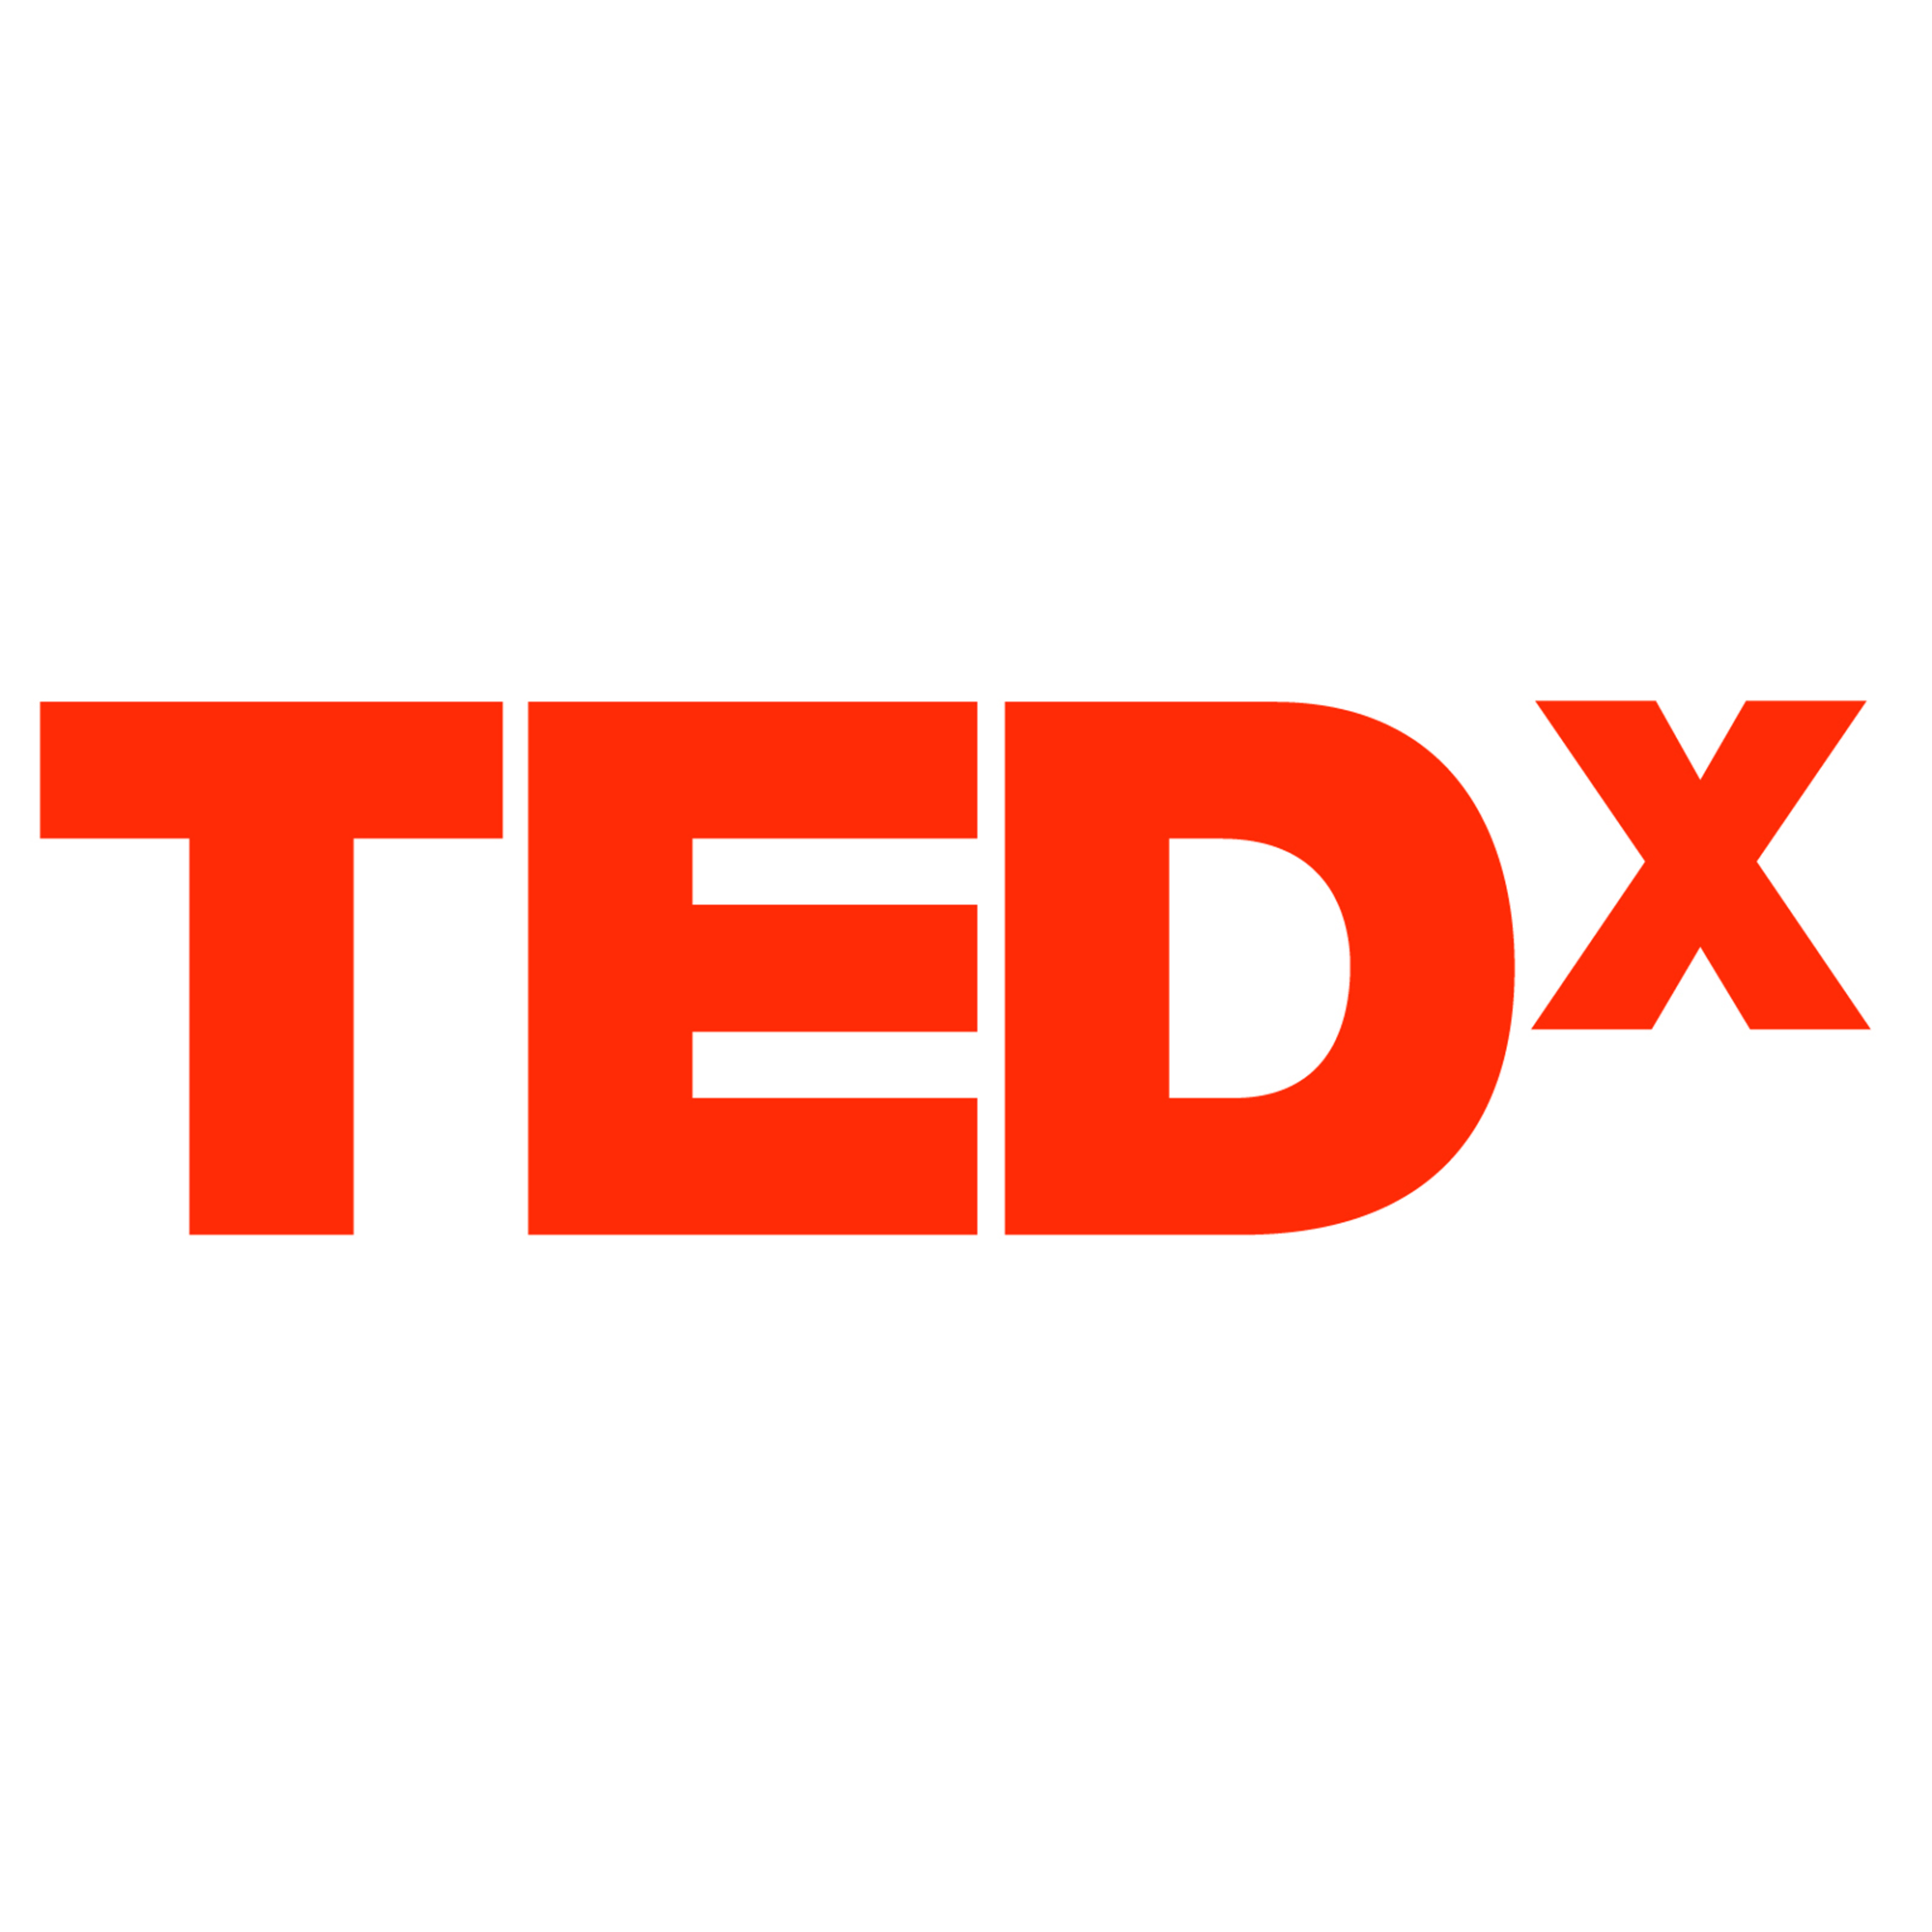 tedx square.png